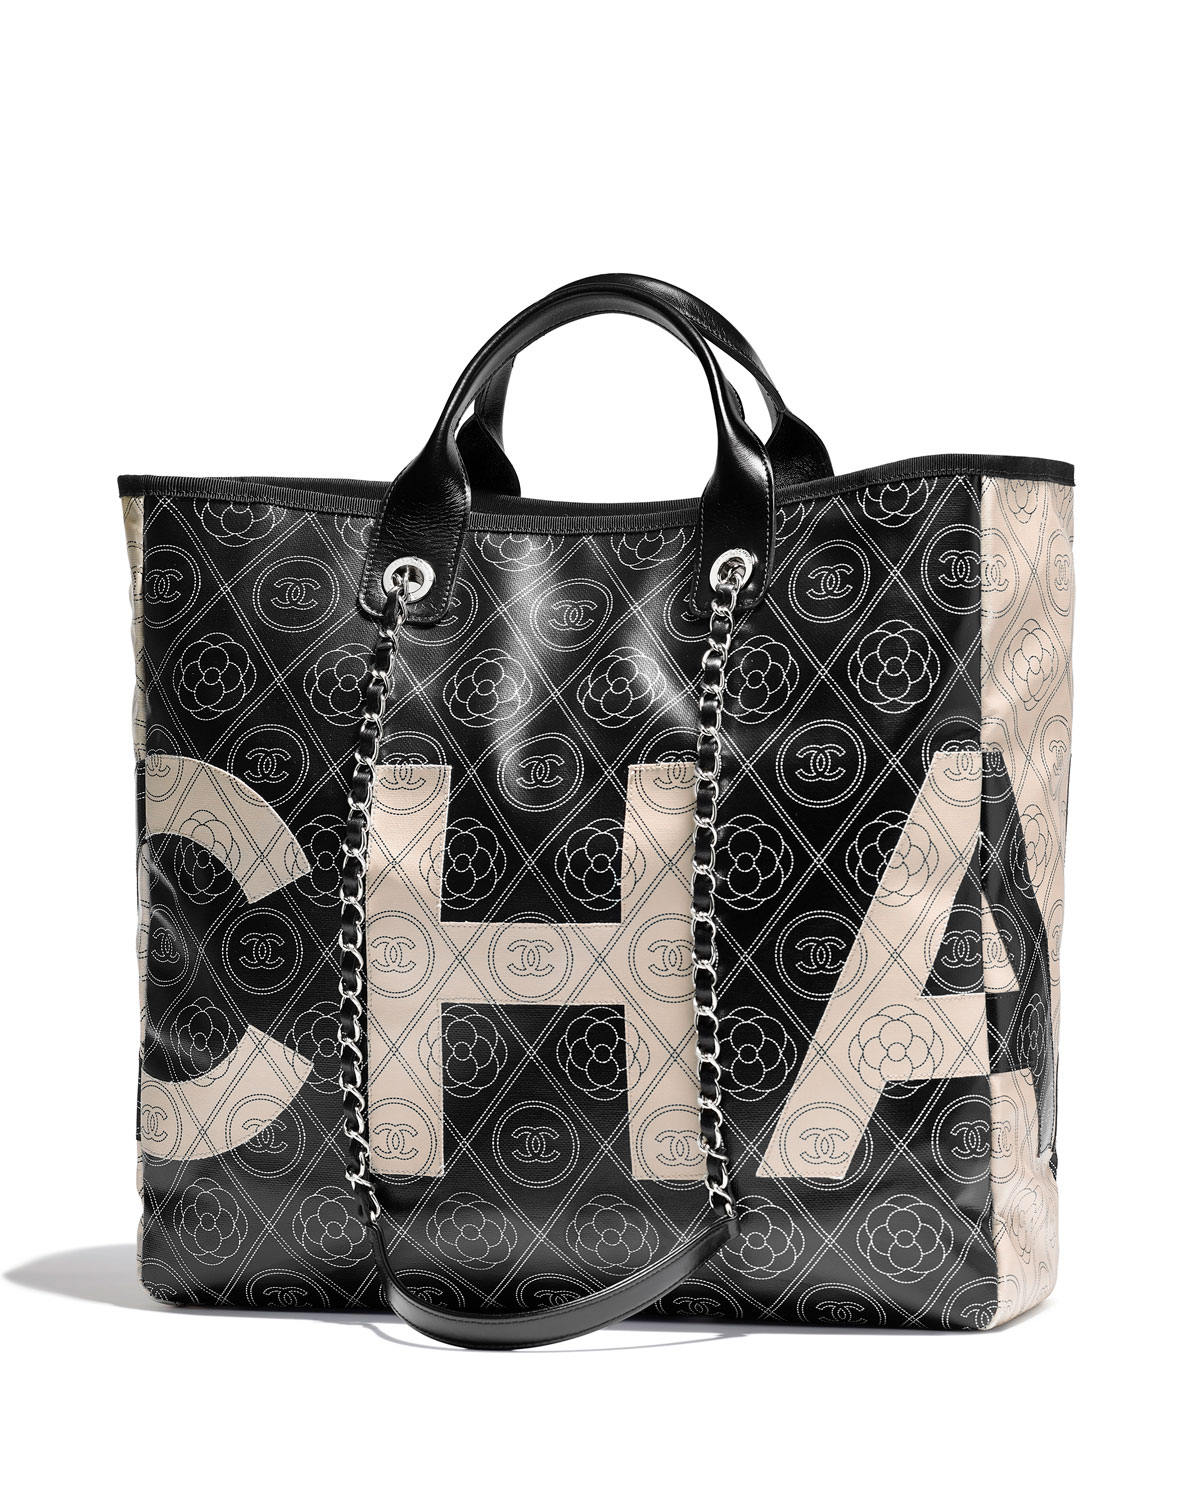 b6b230a841d7 CHANEL LARGE SHOPPING BAG | Neiman Marcus